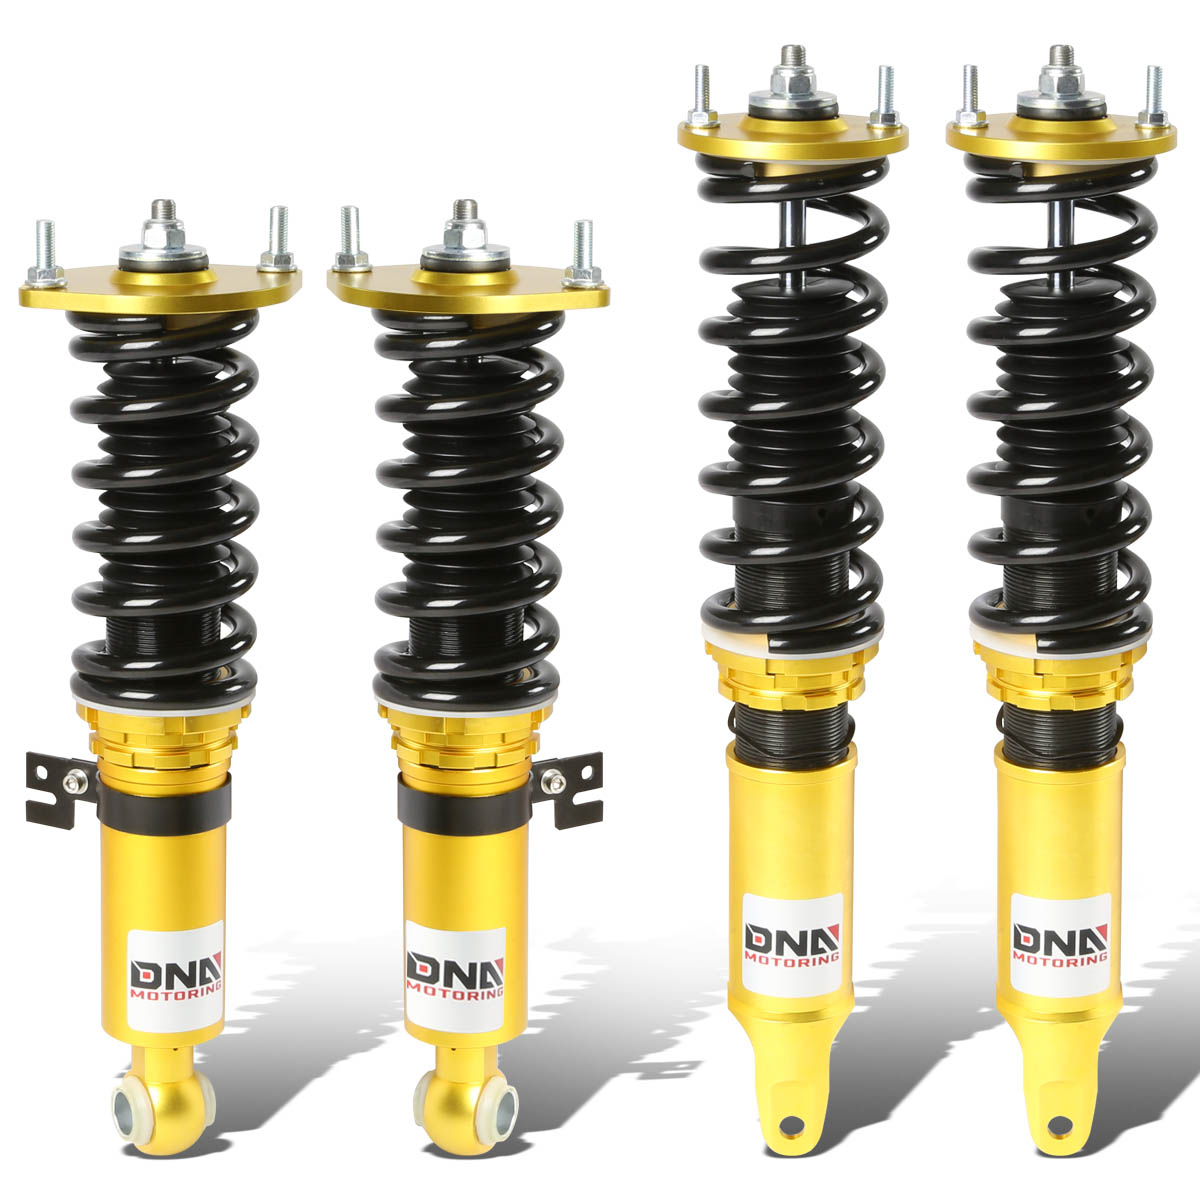 Coilovers Strut for Nissan Fairlady Z 300ZX Z32 1990 1991 1992 1993 1994 1995 1996 Suspension Coil Spring Shock Absorber Height Adjustable